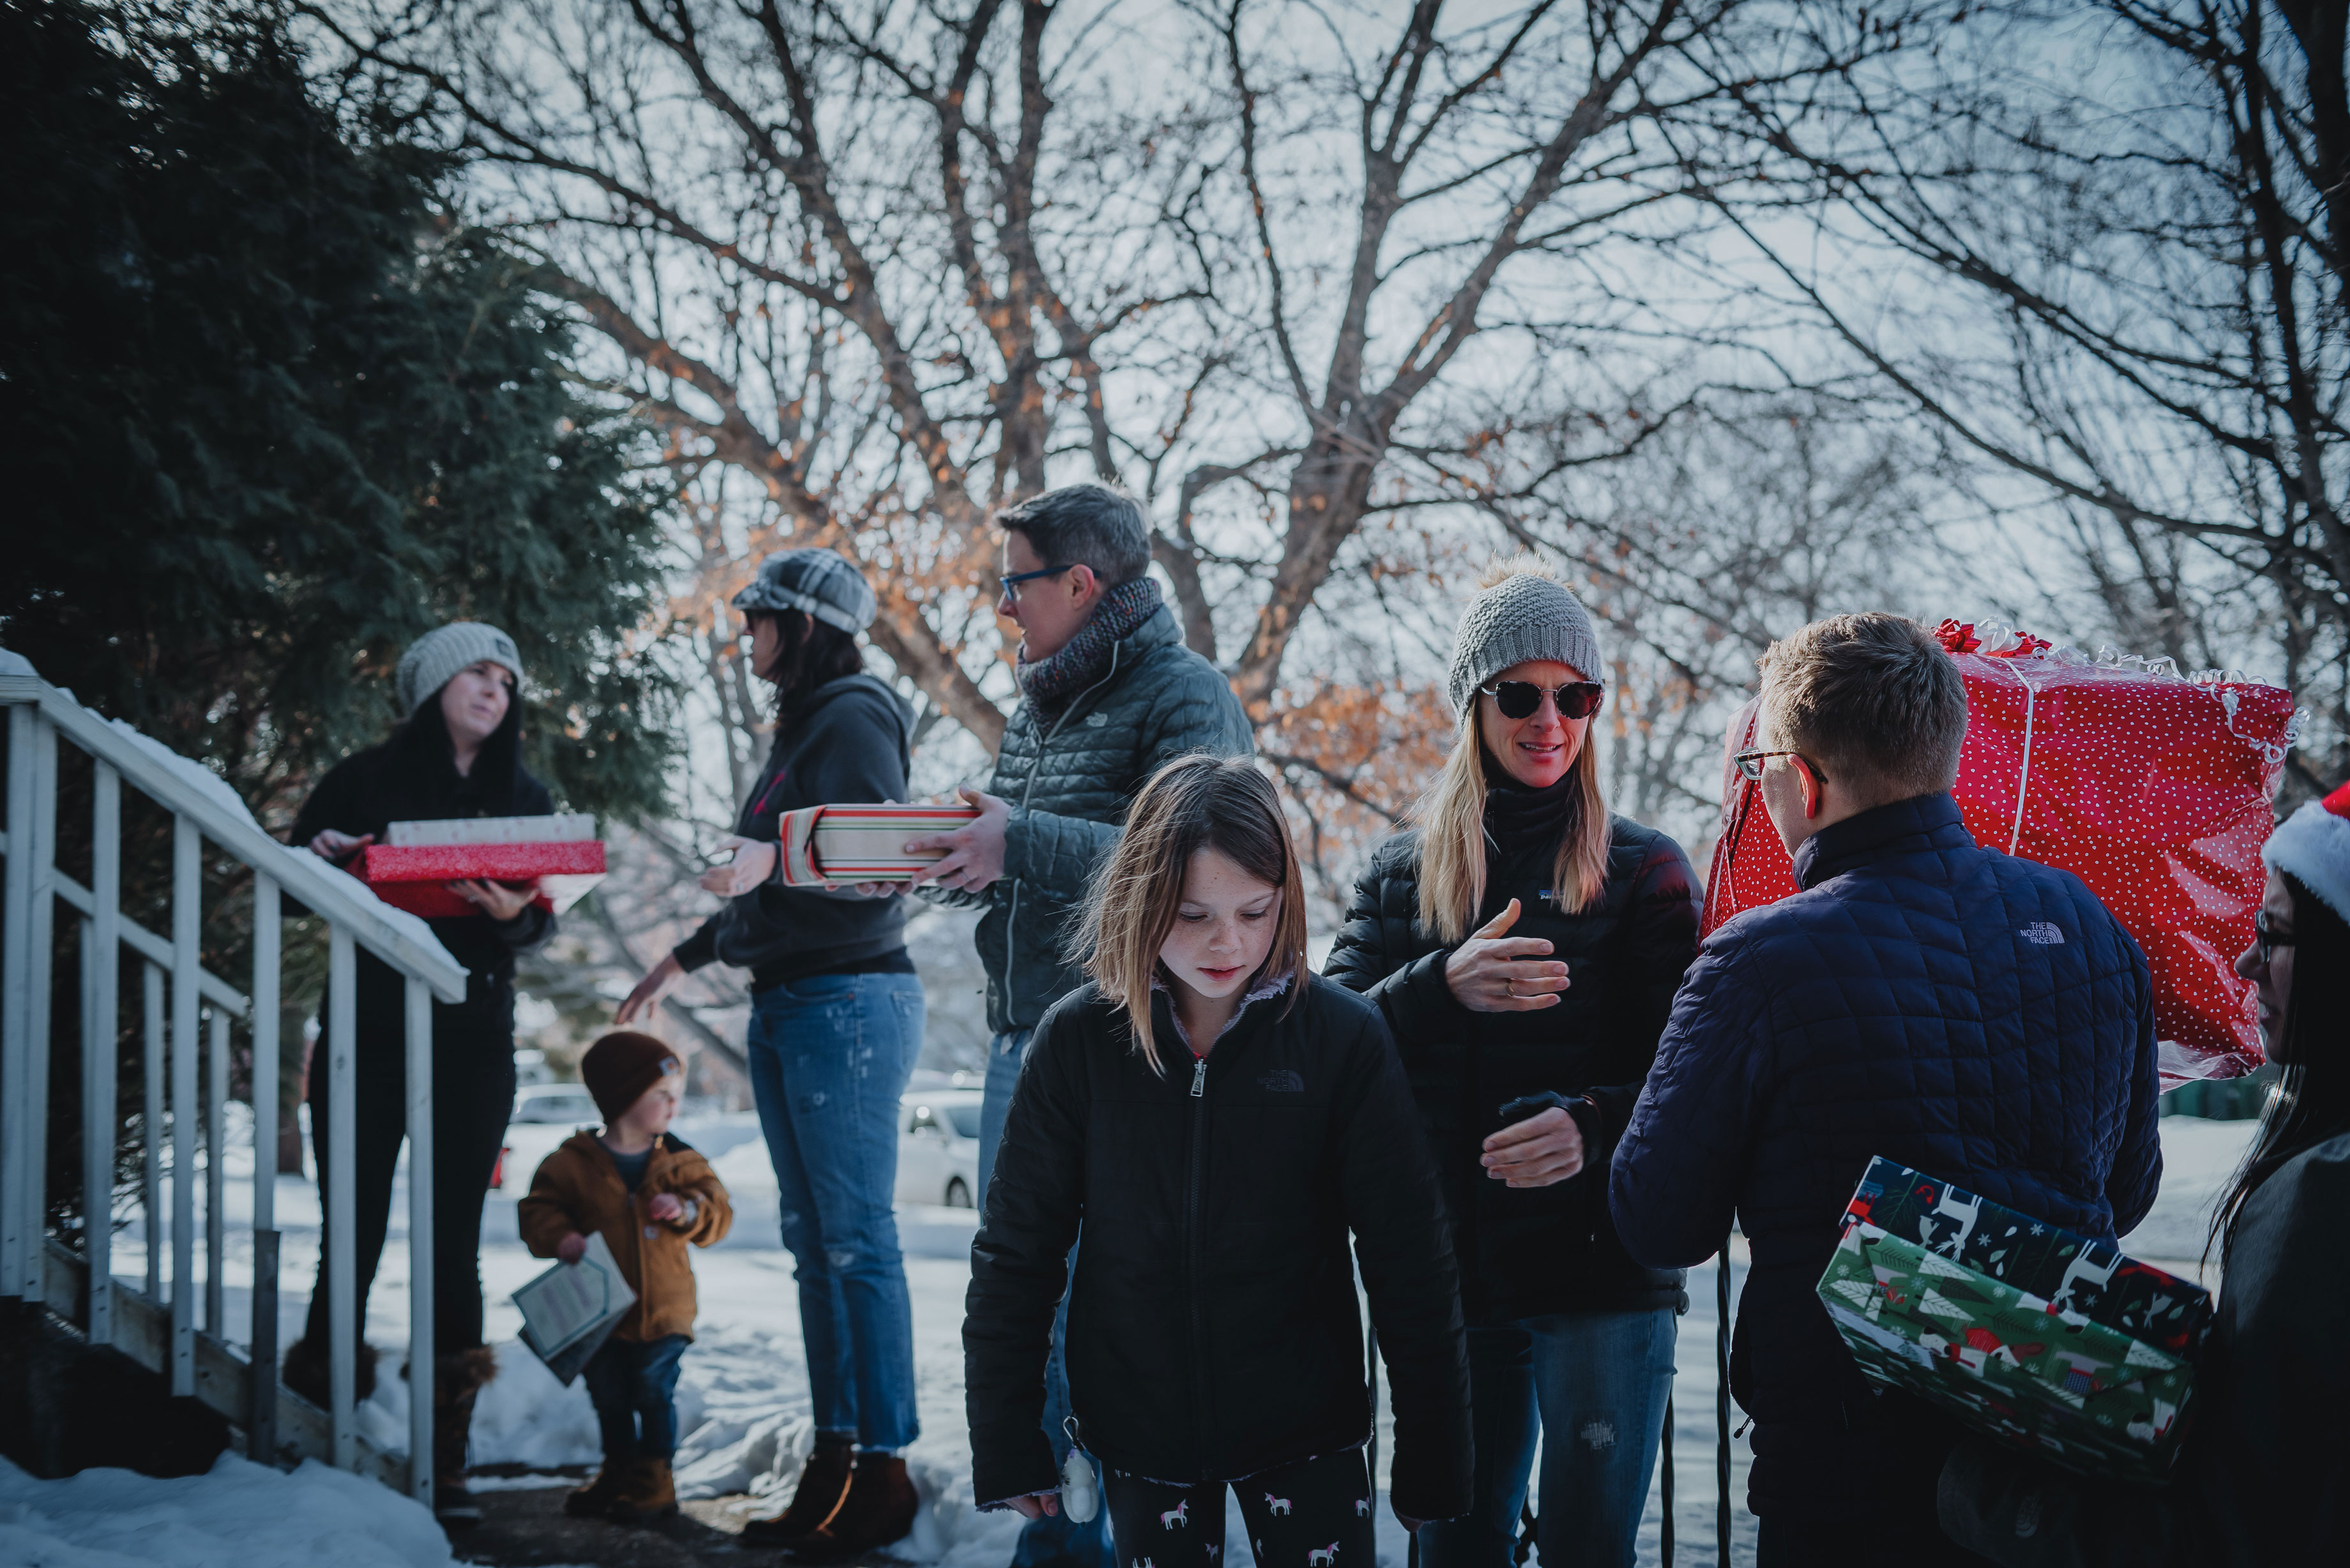 Adults and children line up outside a family home in Minnesota to deliver gifts in December 2019 as part of CIP's sponsorship of Best Christmas Ever 2019